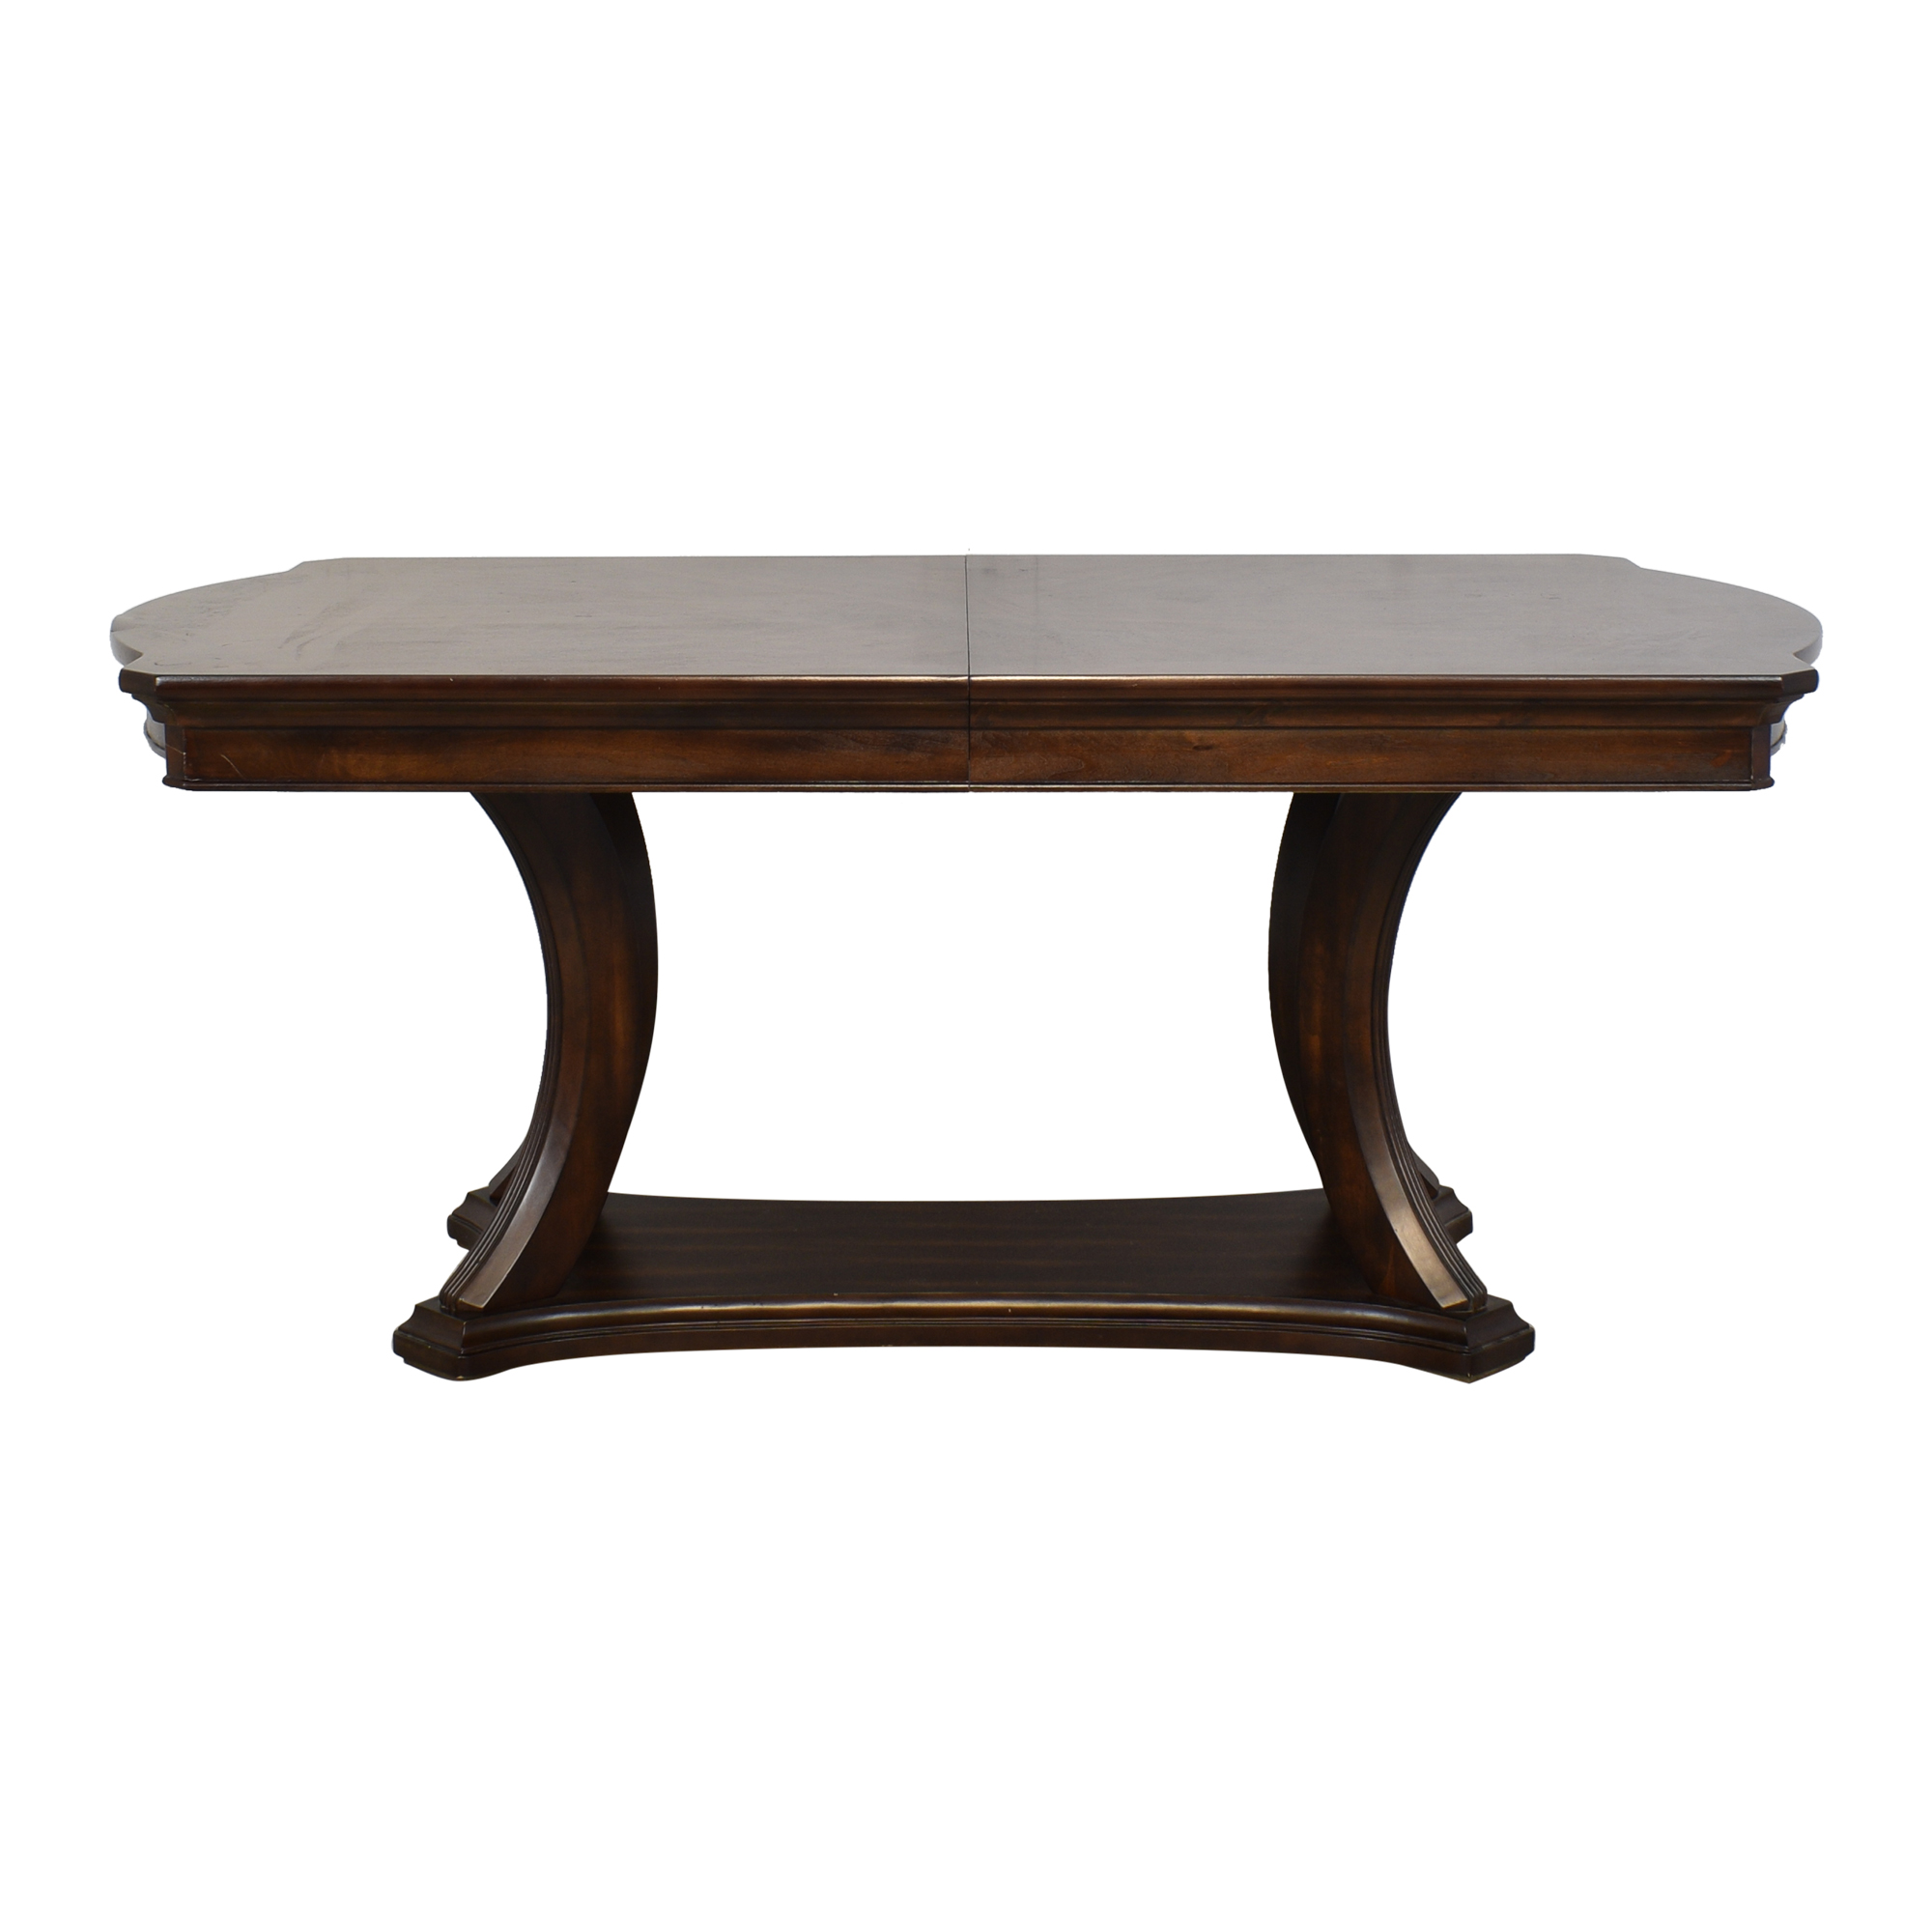 Pedestal Base Extendable Dining Table sale